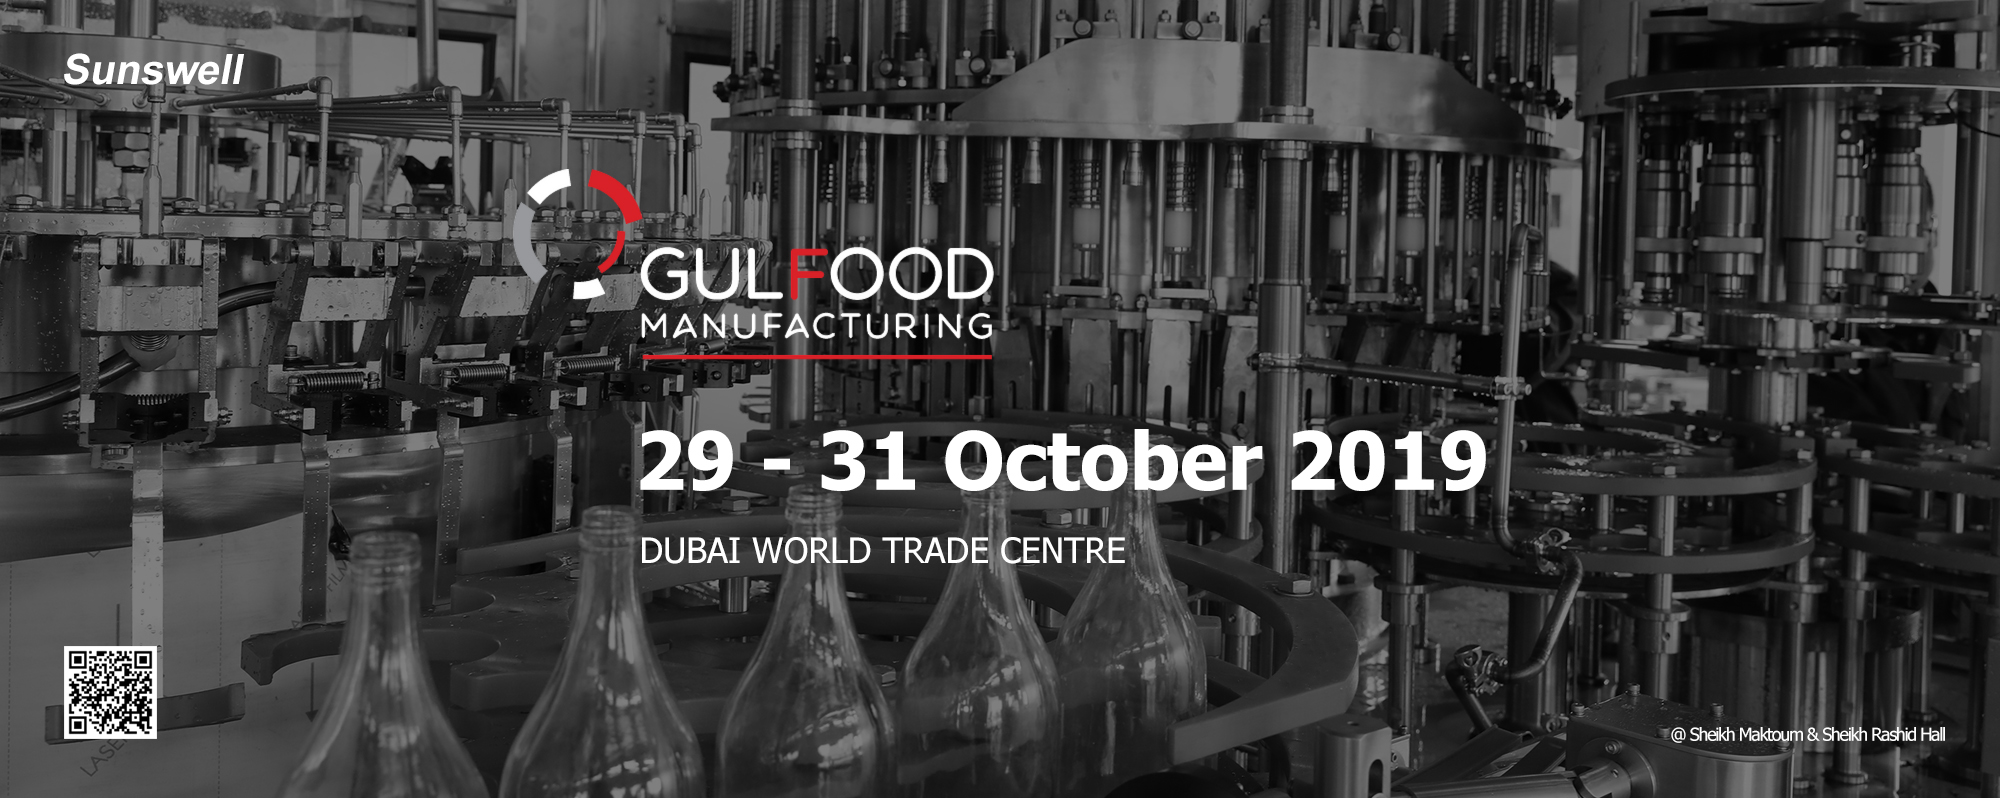 gulfood 2019 manufacturing